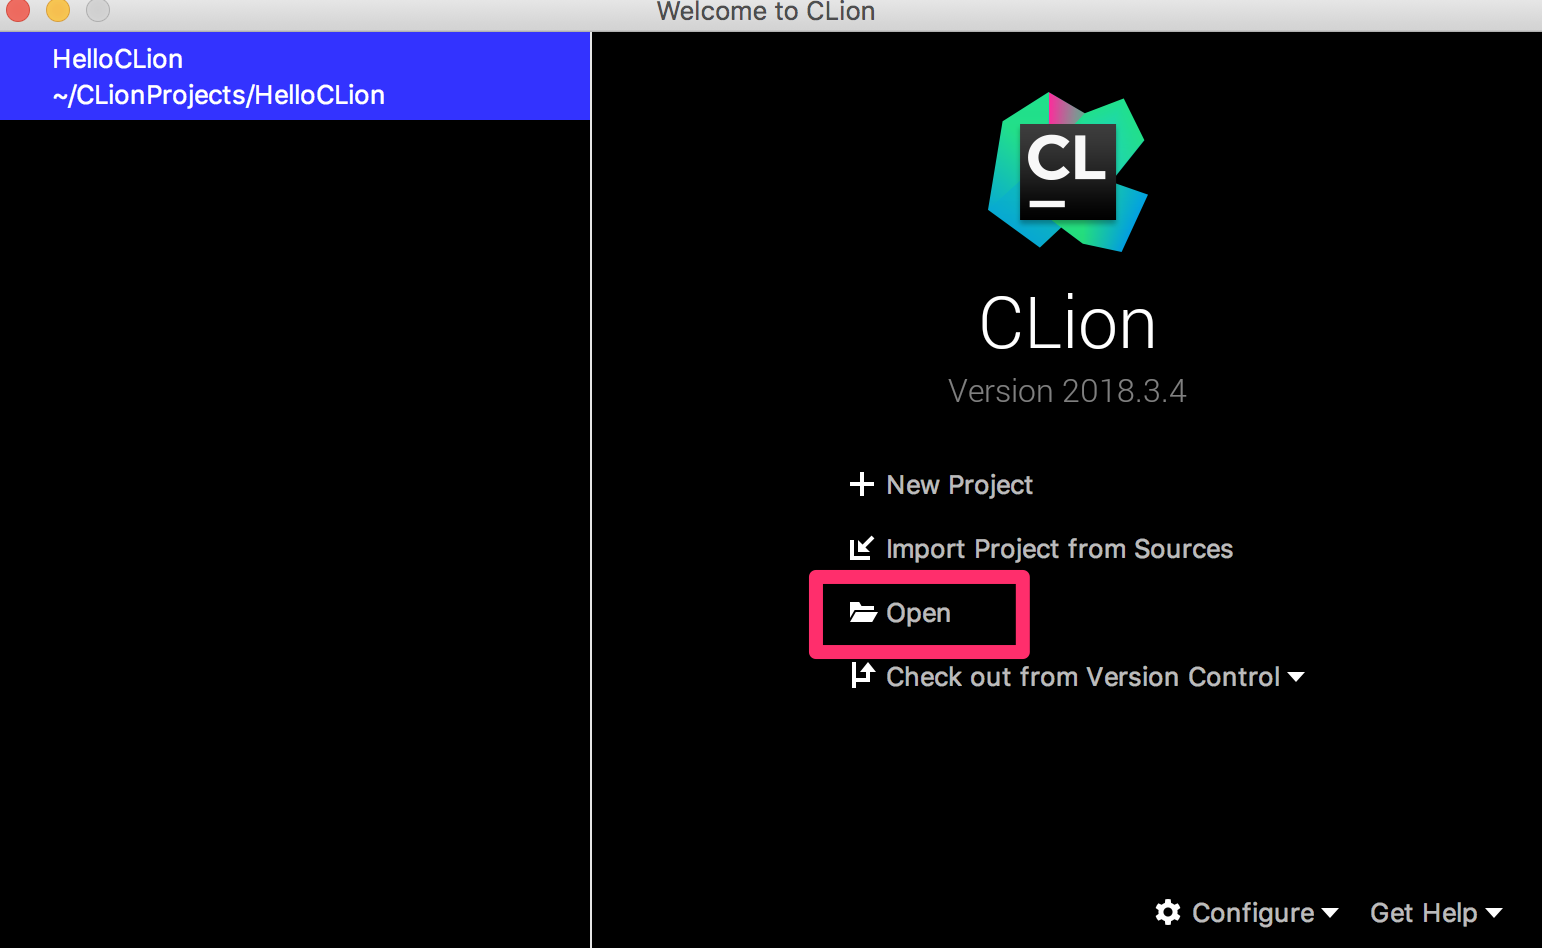 Welcome_to_CLion